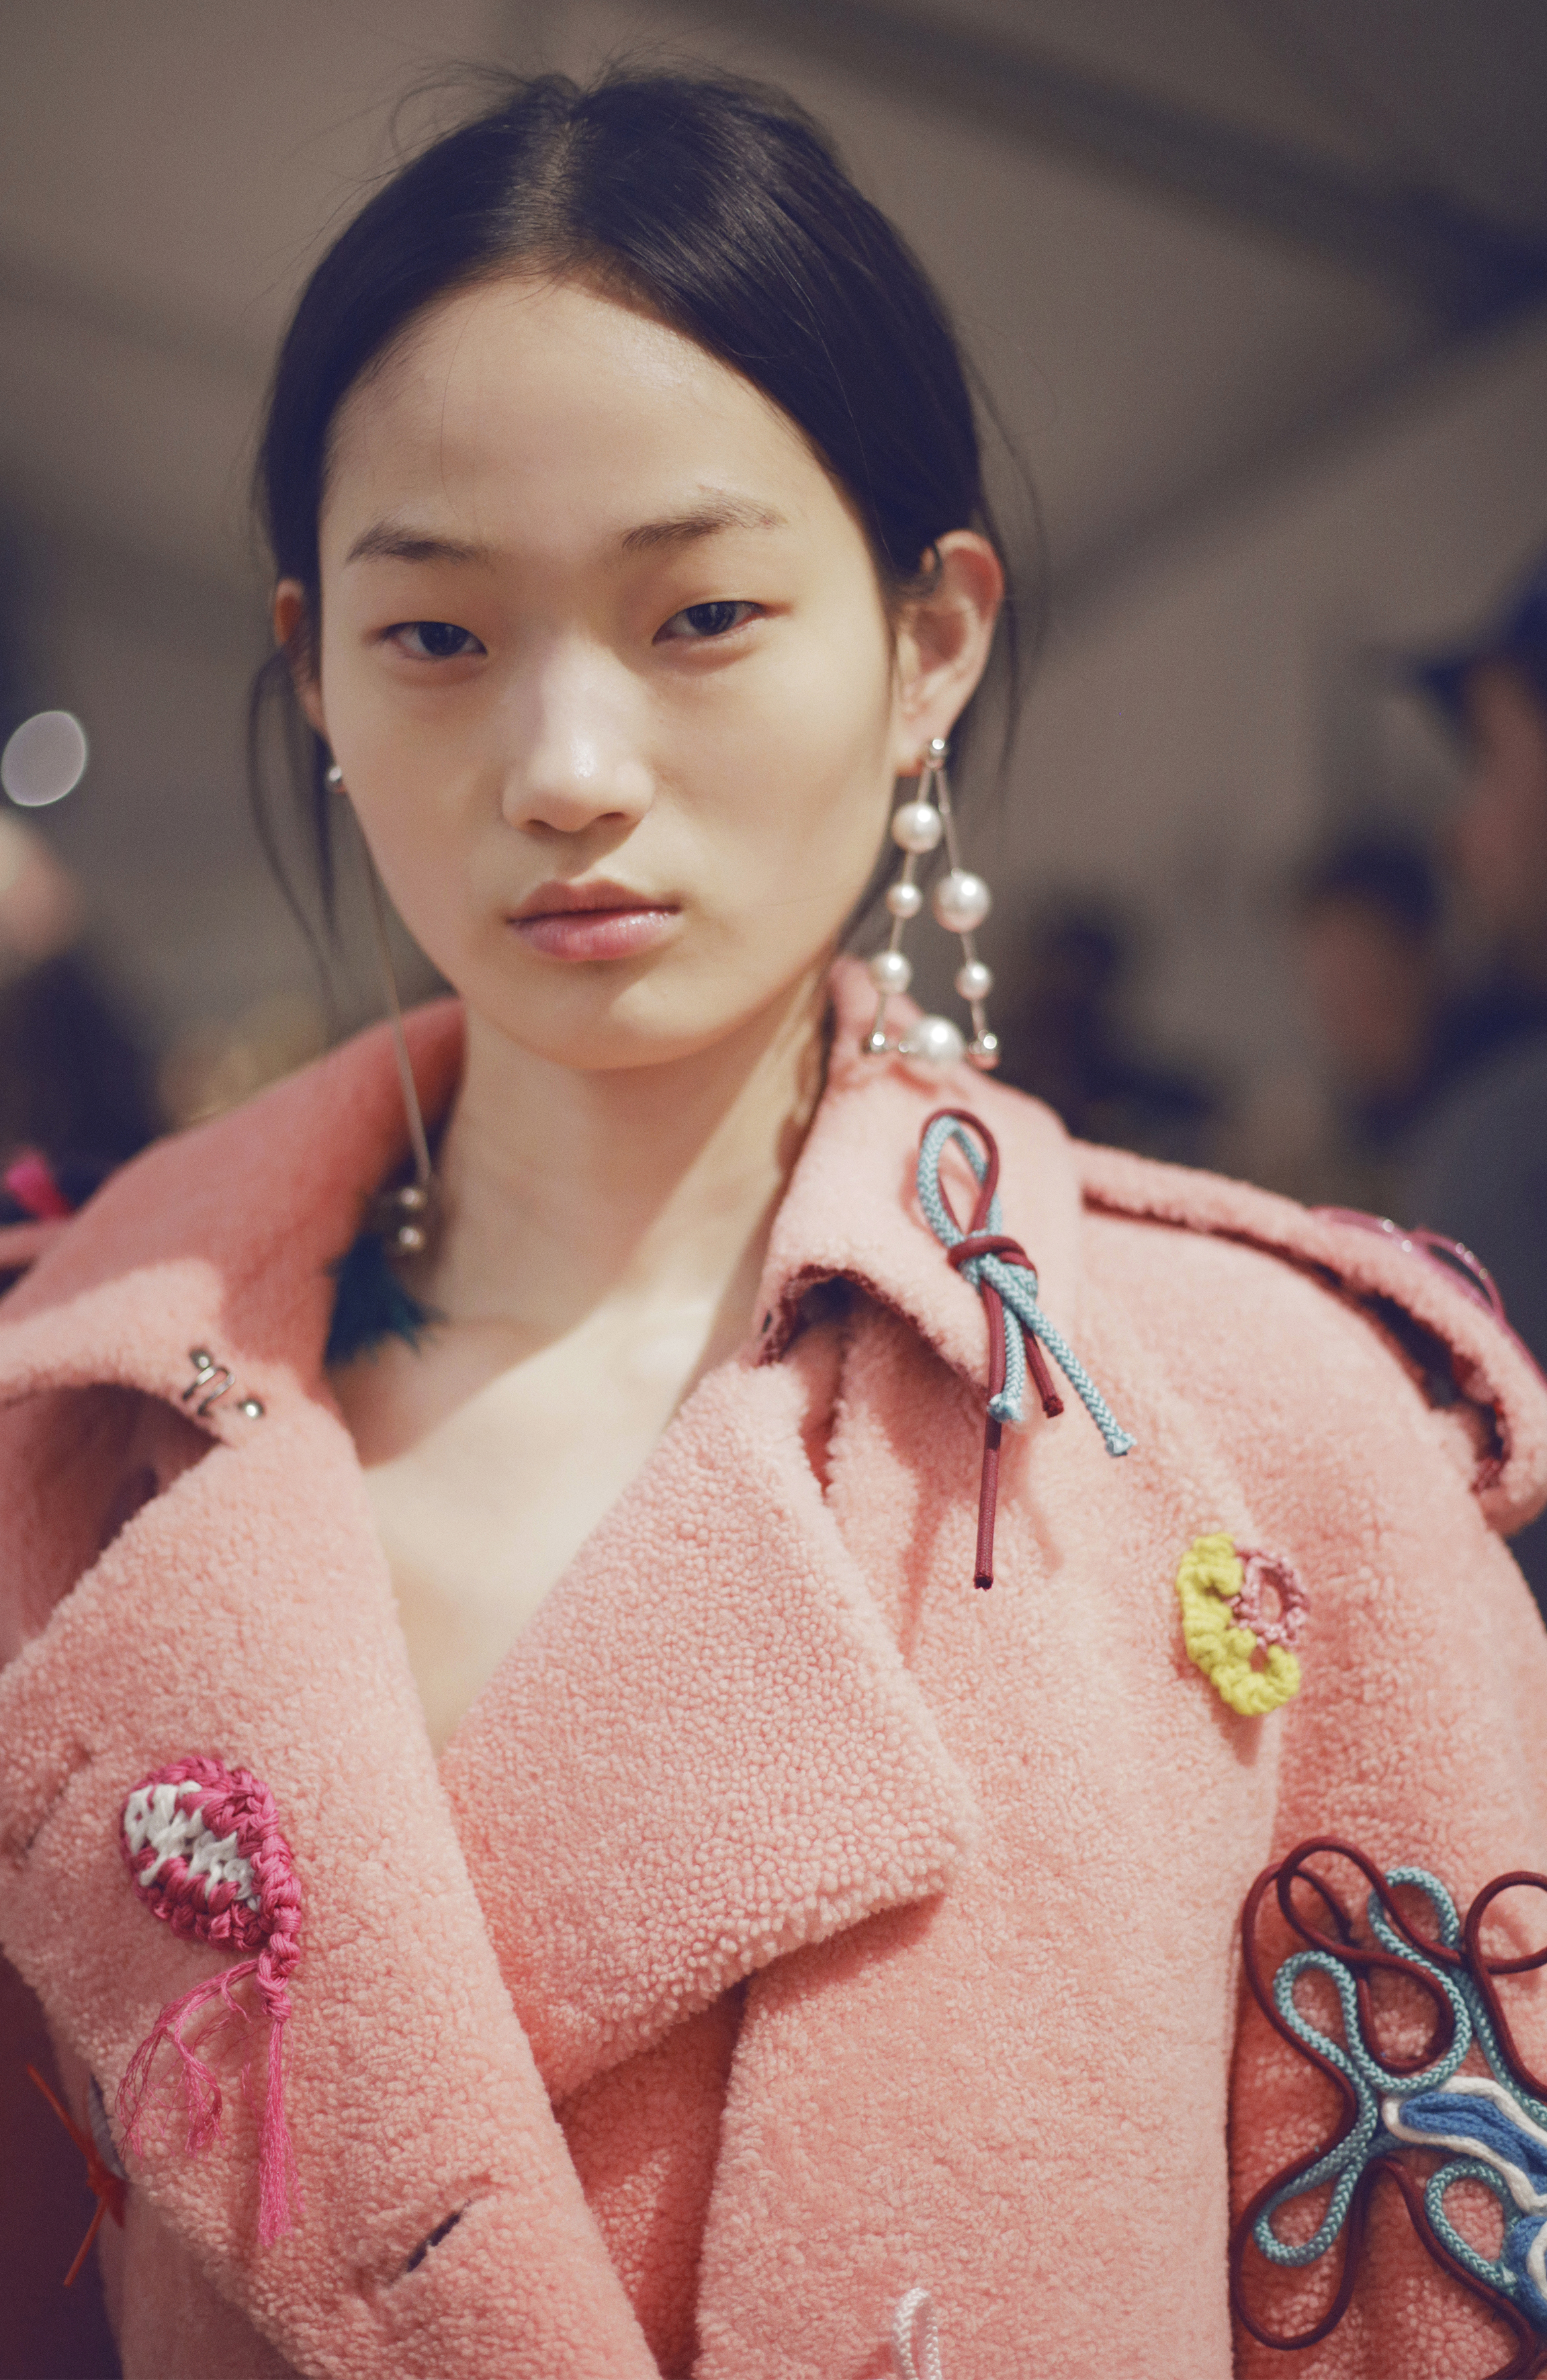 Backstage at the Burberry February 2018 Show_001